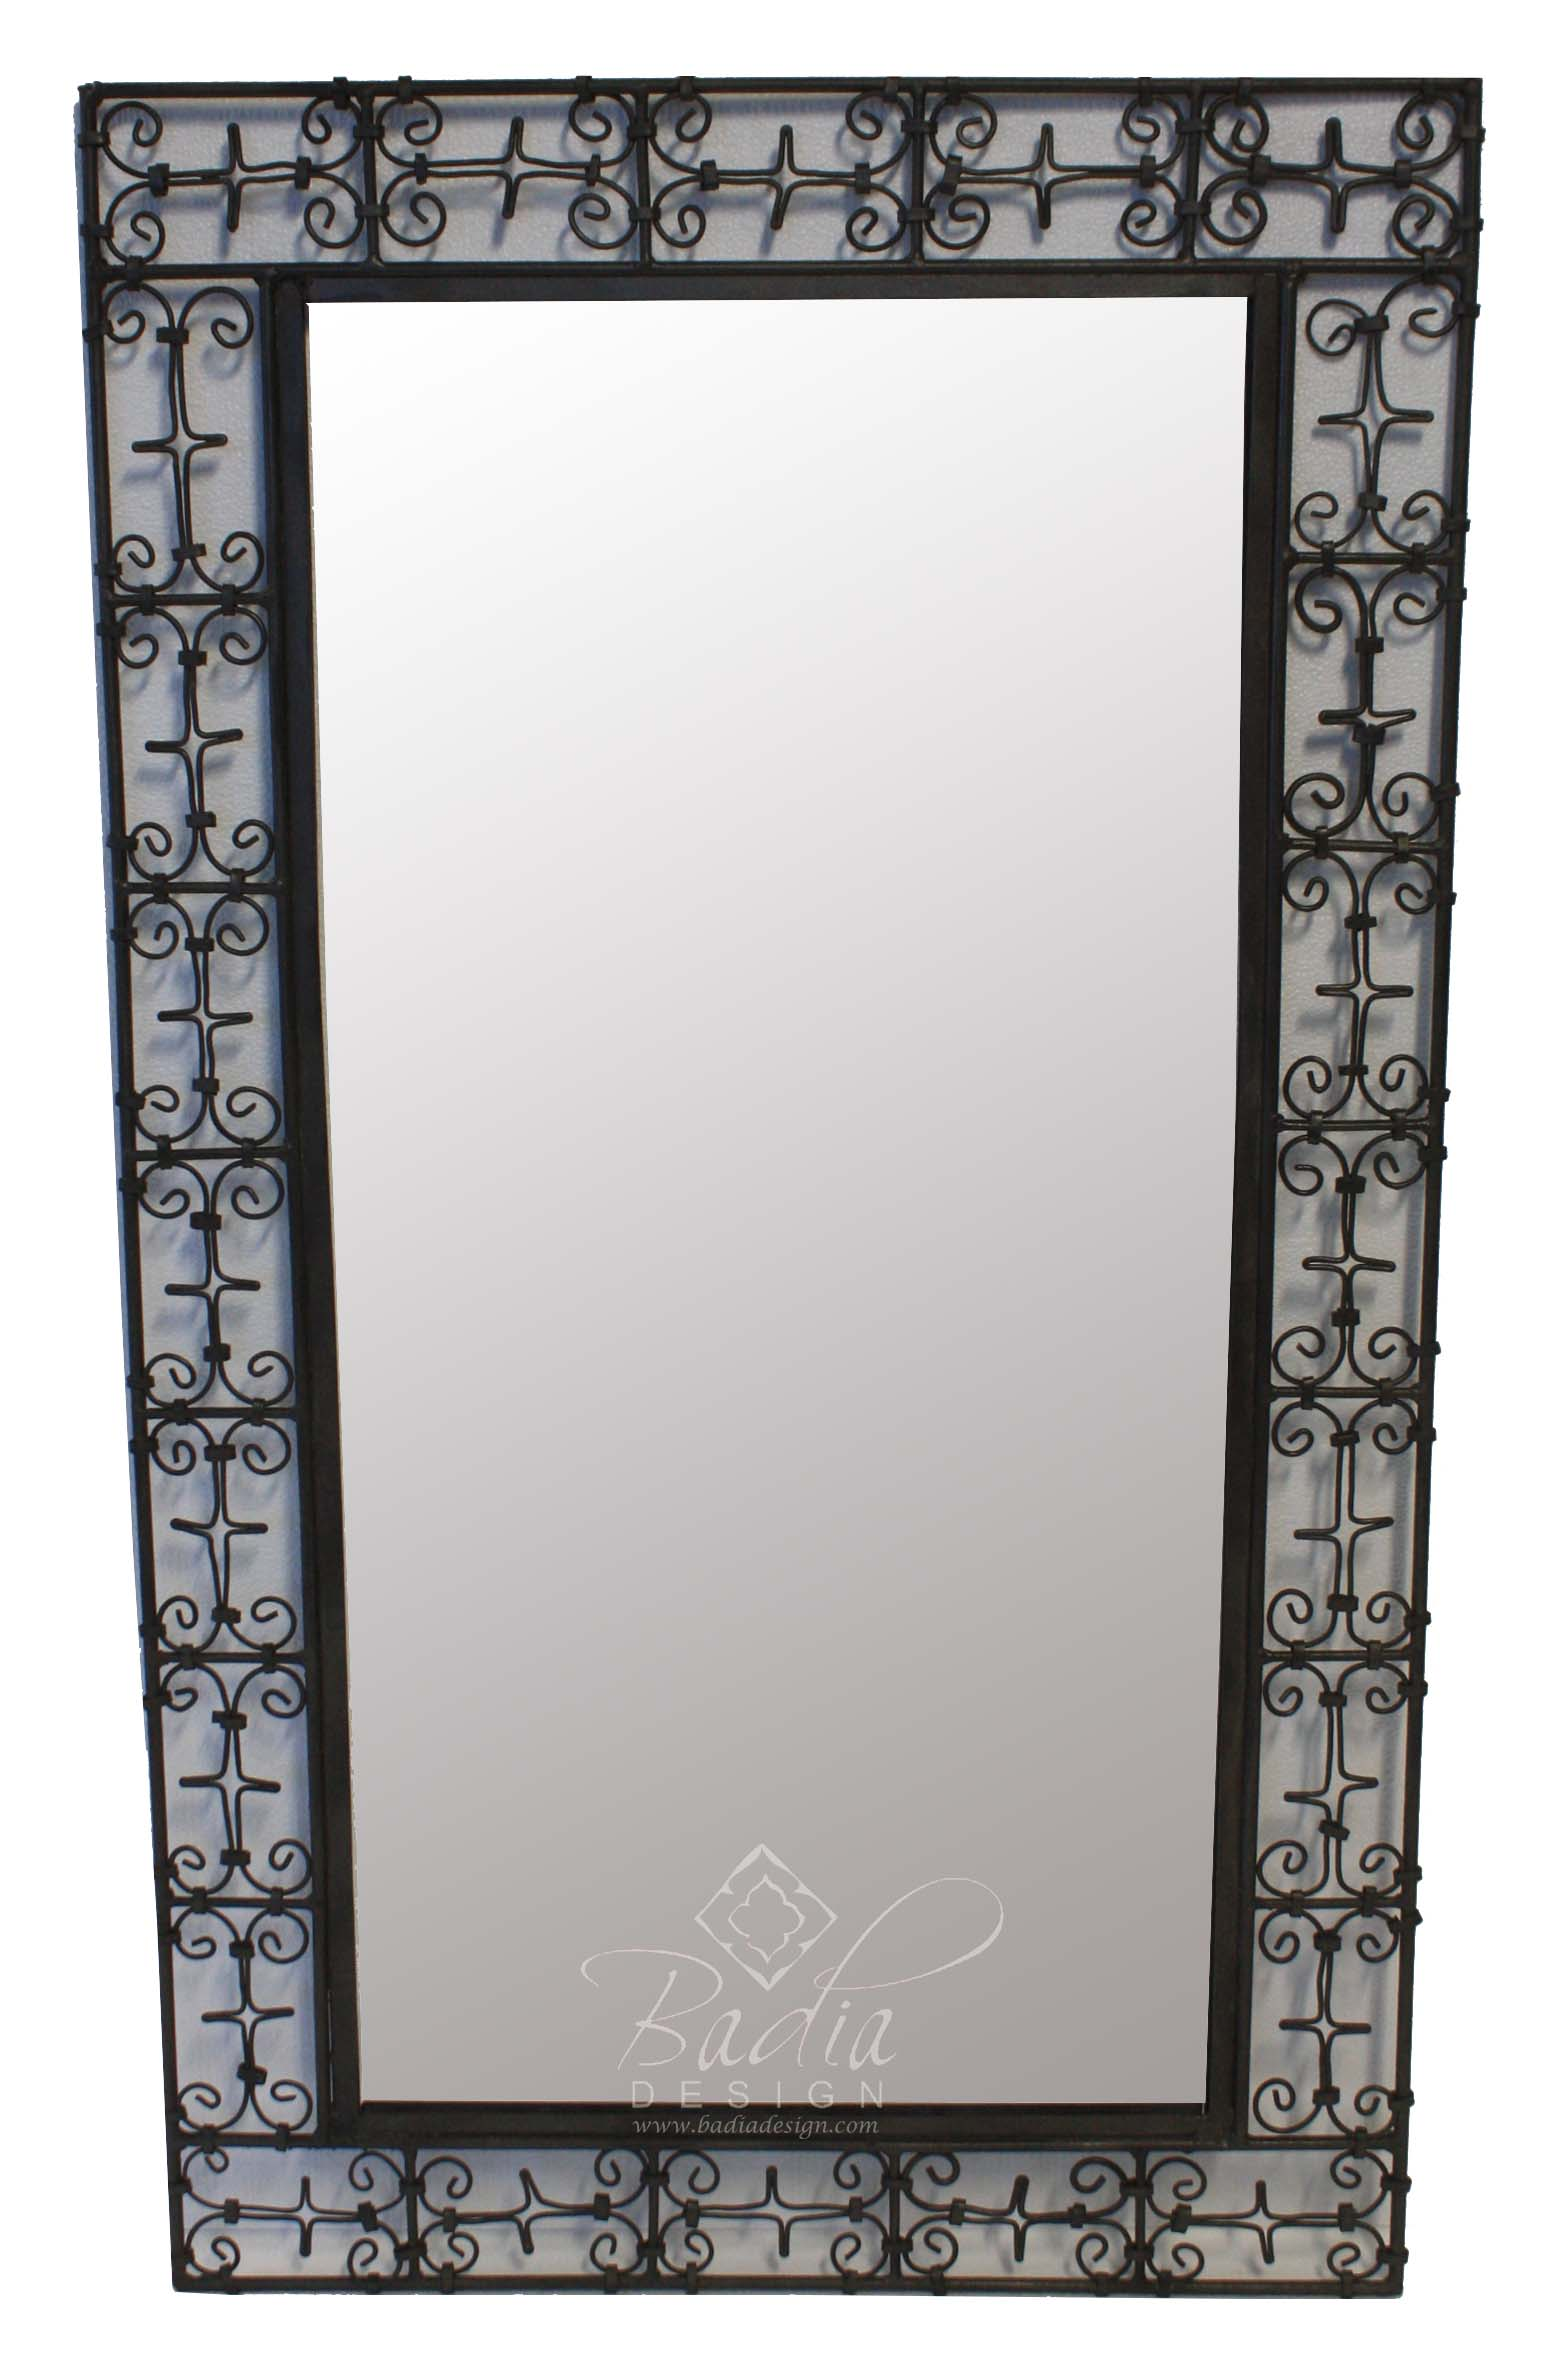 moroccan-wrought-iron-mirror-is7-1.jpg